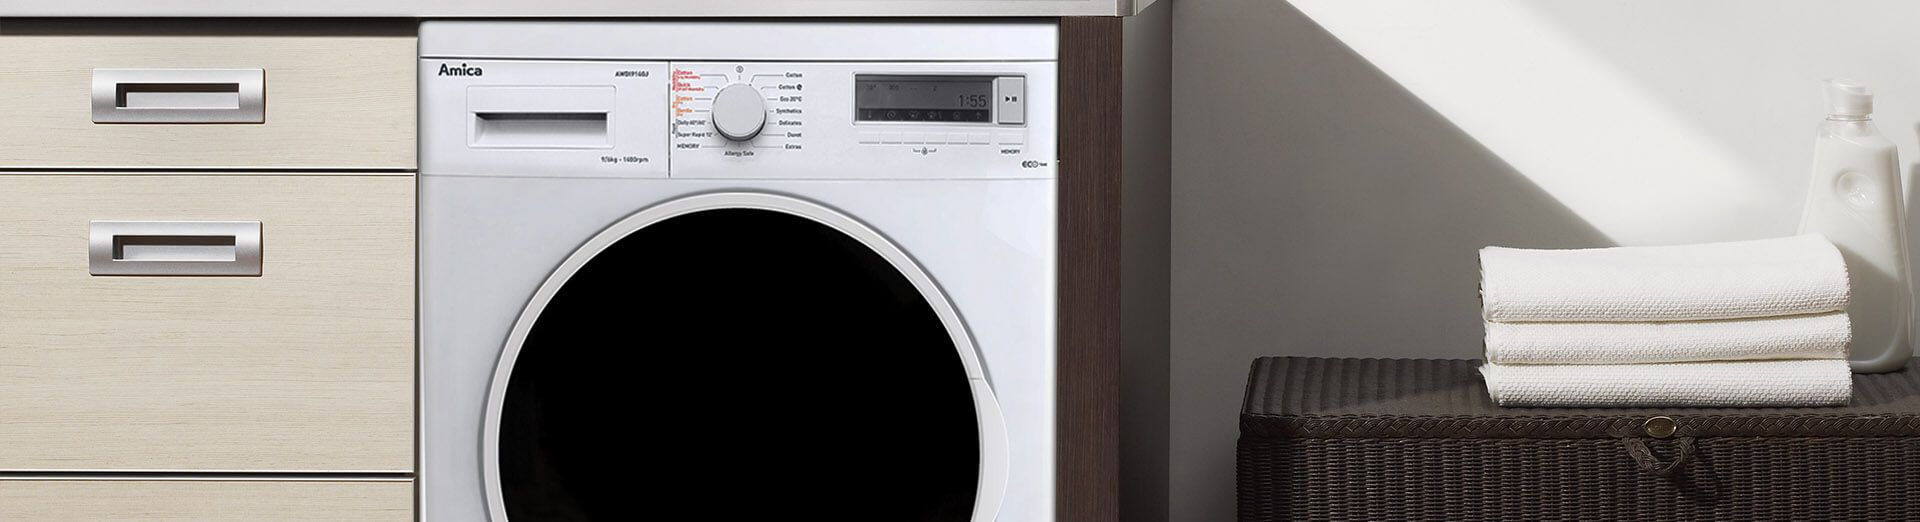 Freestanding washer dryer top image